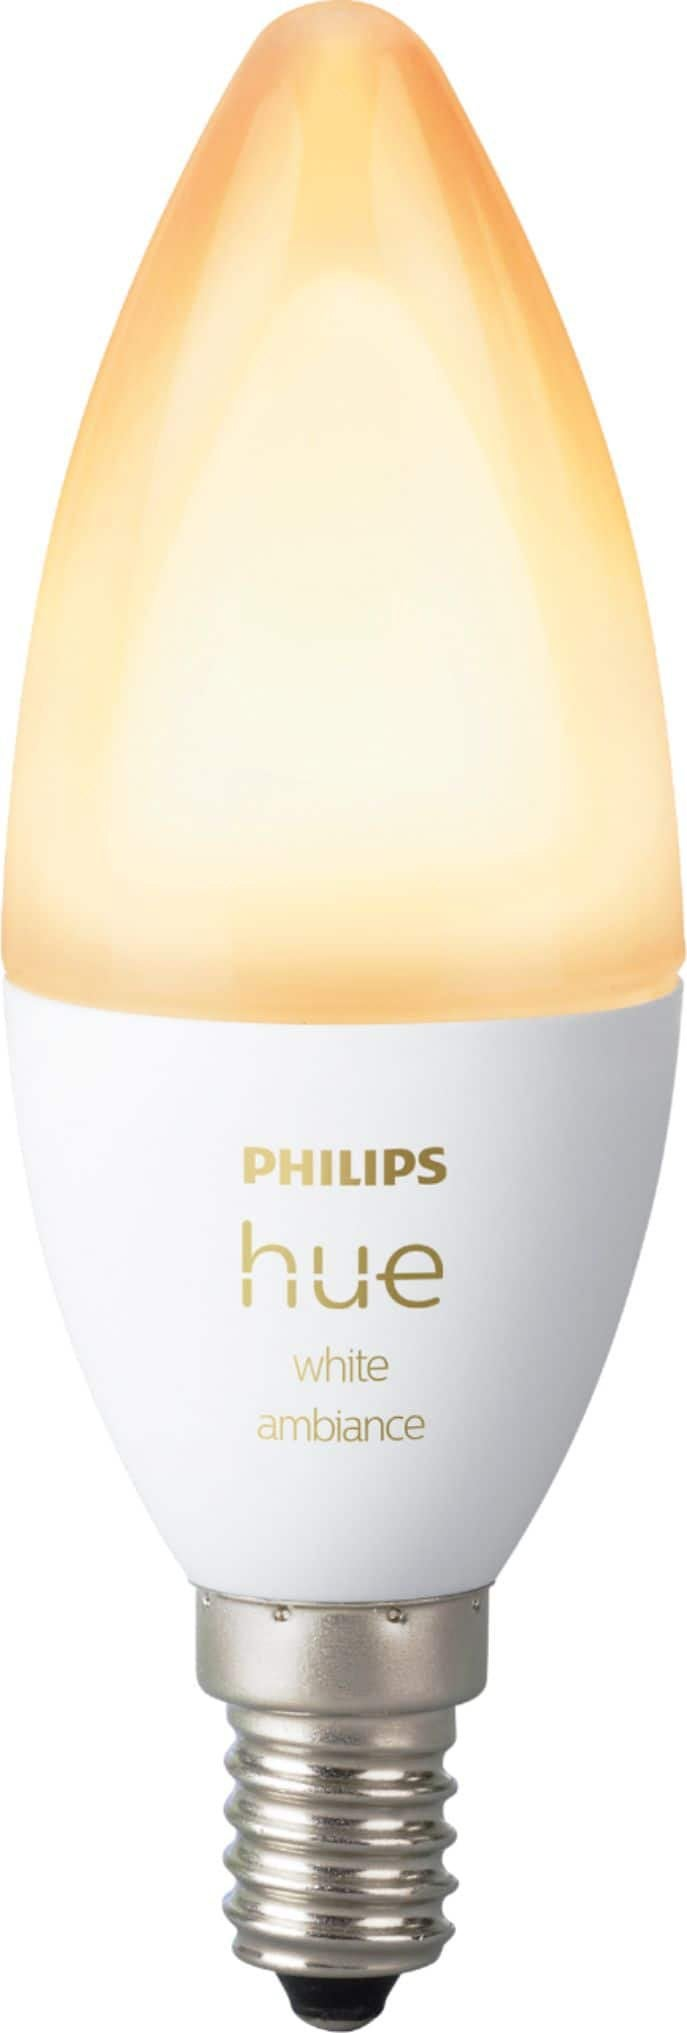 Hue candle bulbs white ambiance 15 at Best Buy